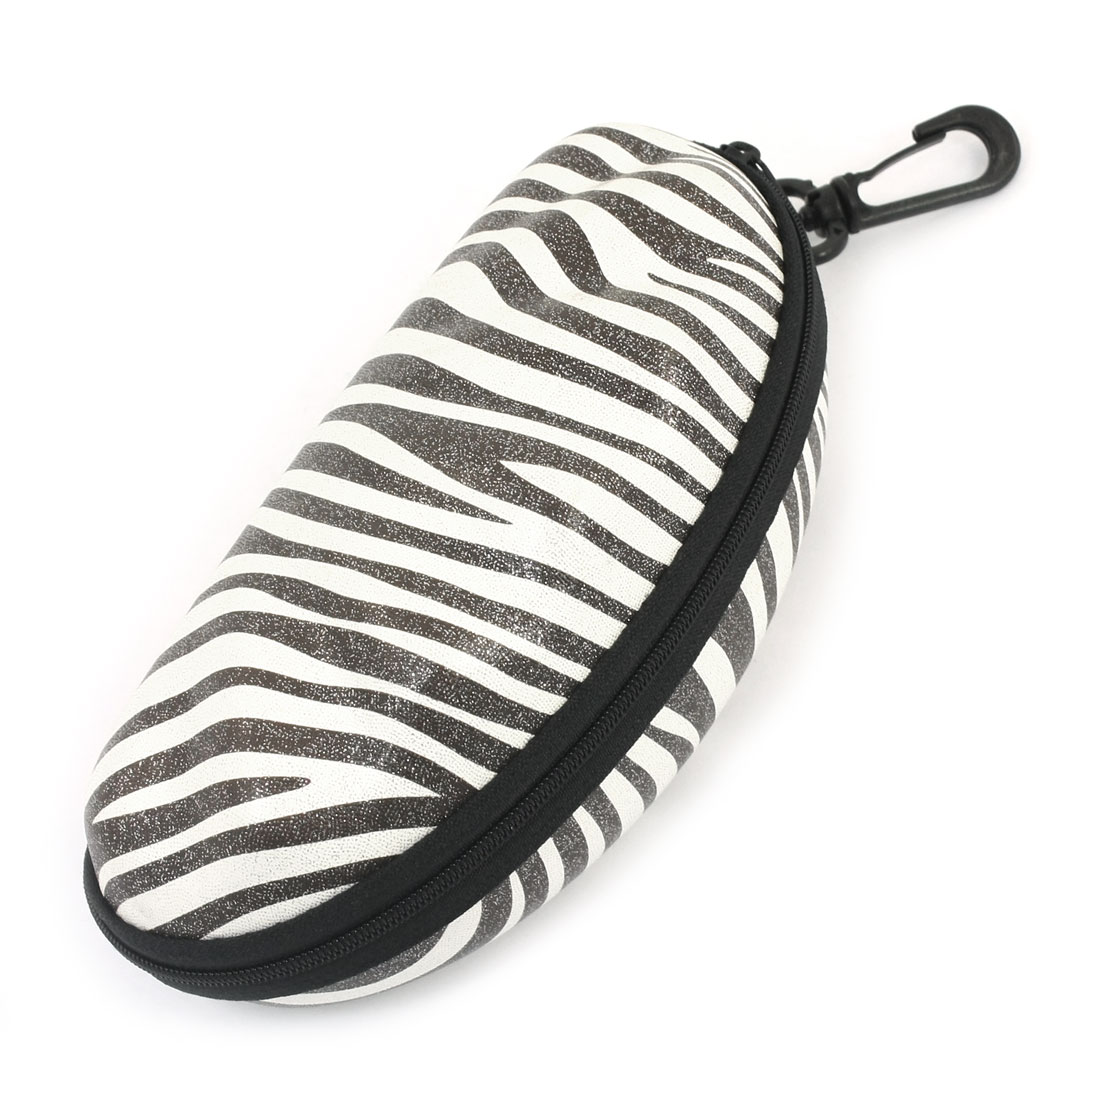 Black White Faux Leather Oval Shape Zipper Eyeglasses Case Box Container w Plastic Clasp